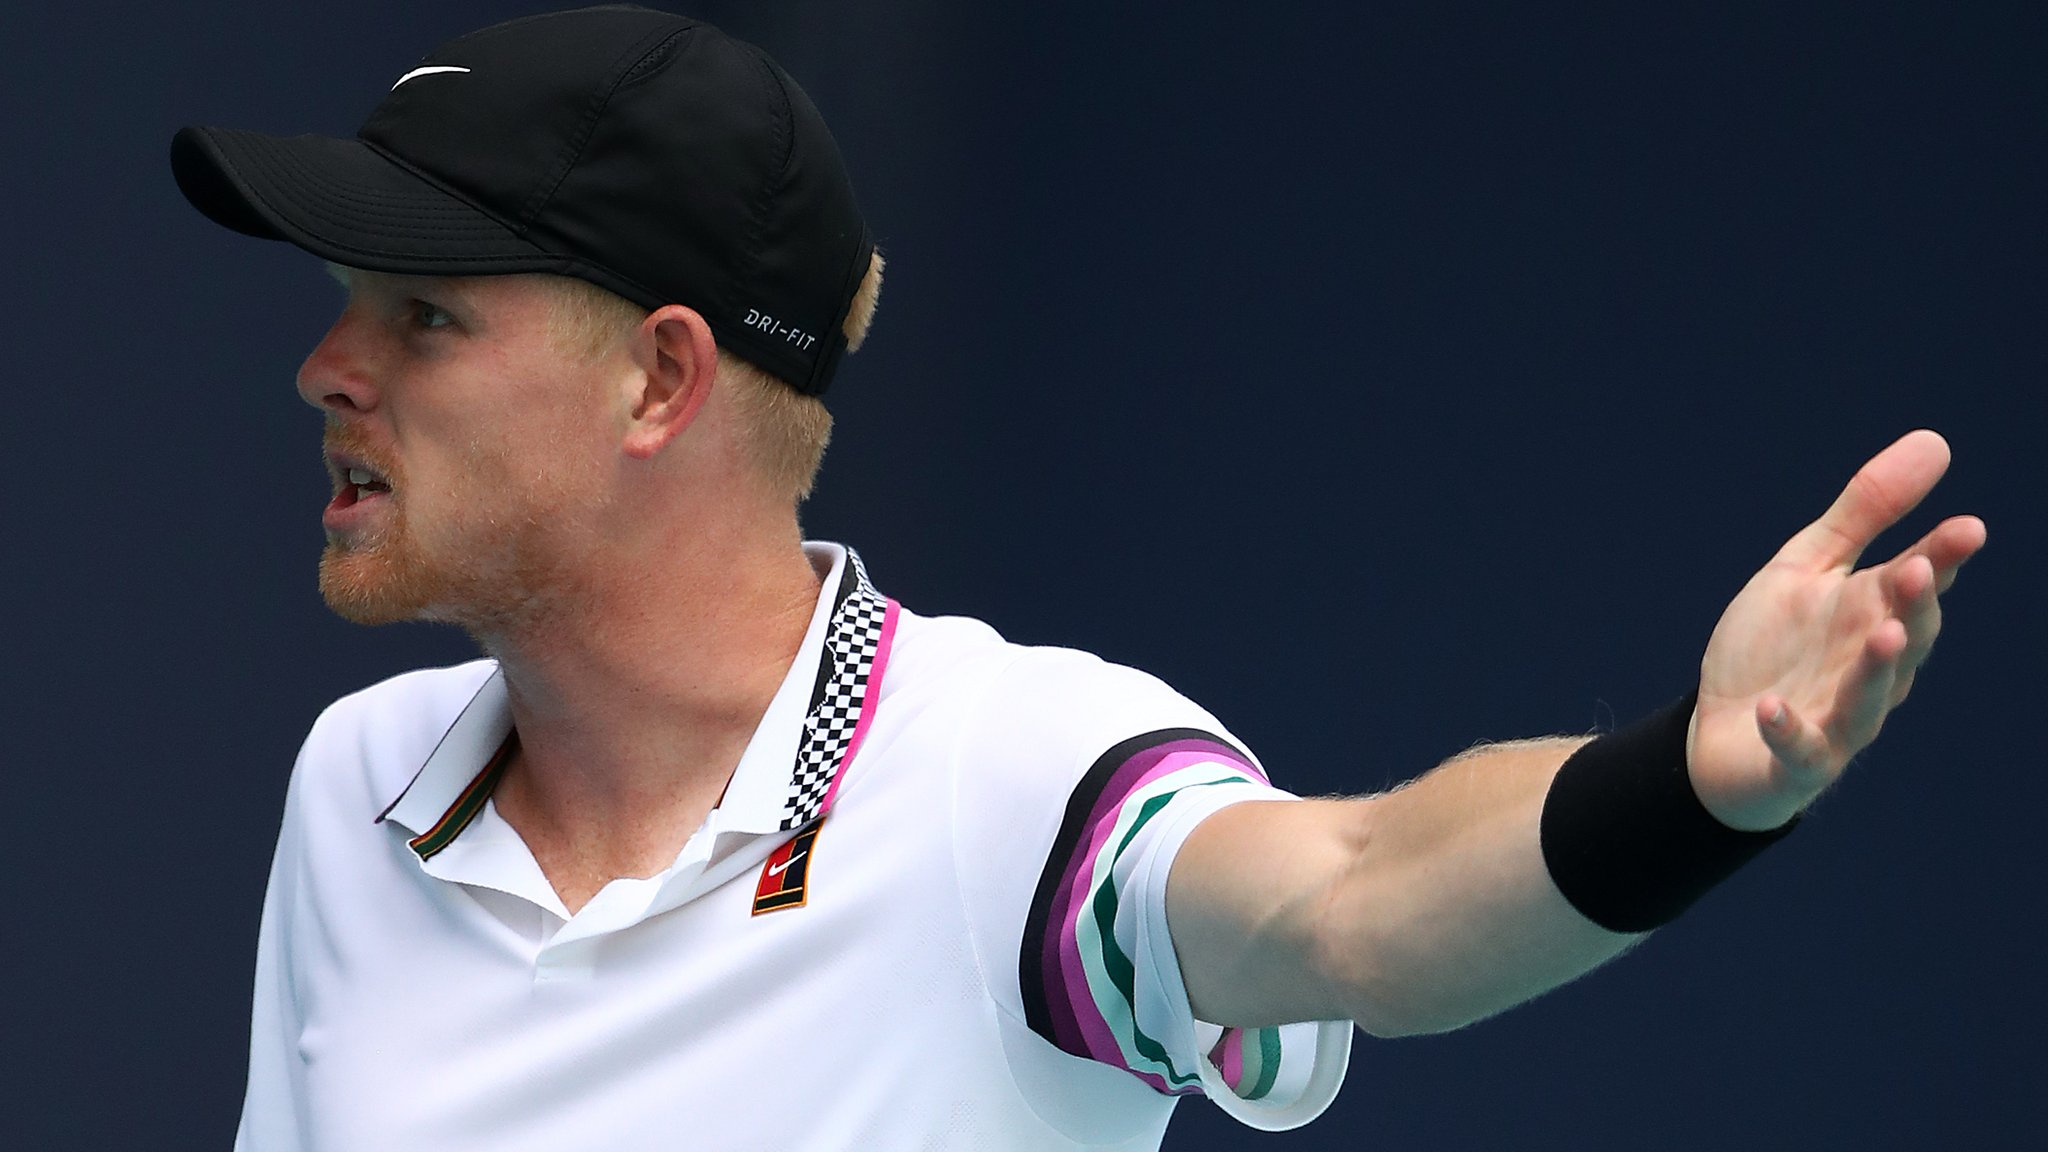 Miami Open: Kyle Edmund distracted by crowd in loss to John Isner